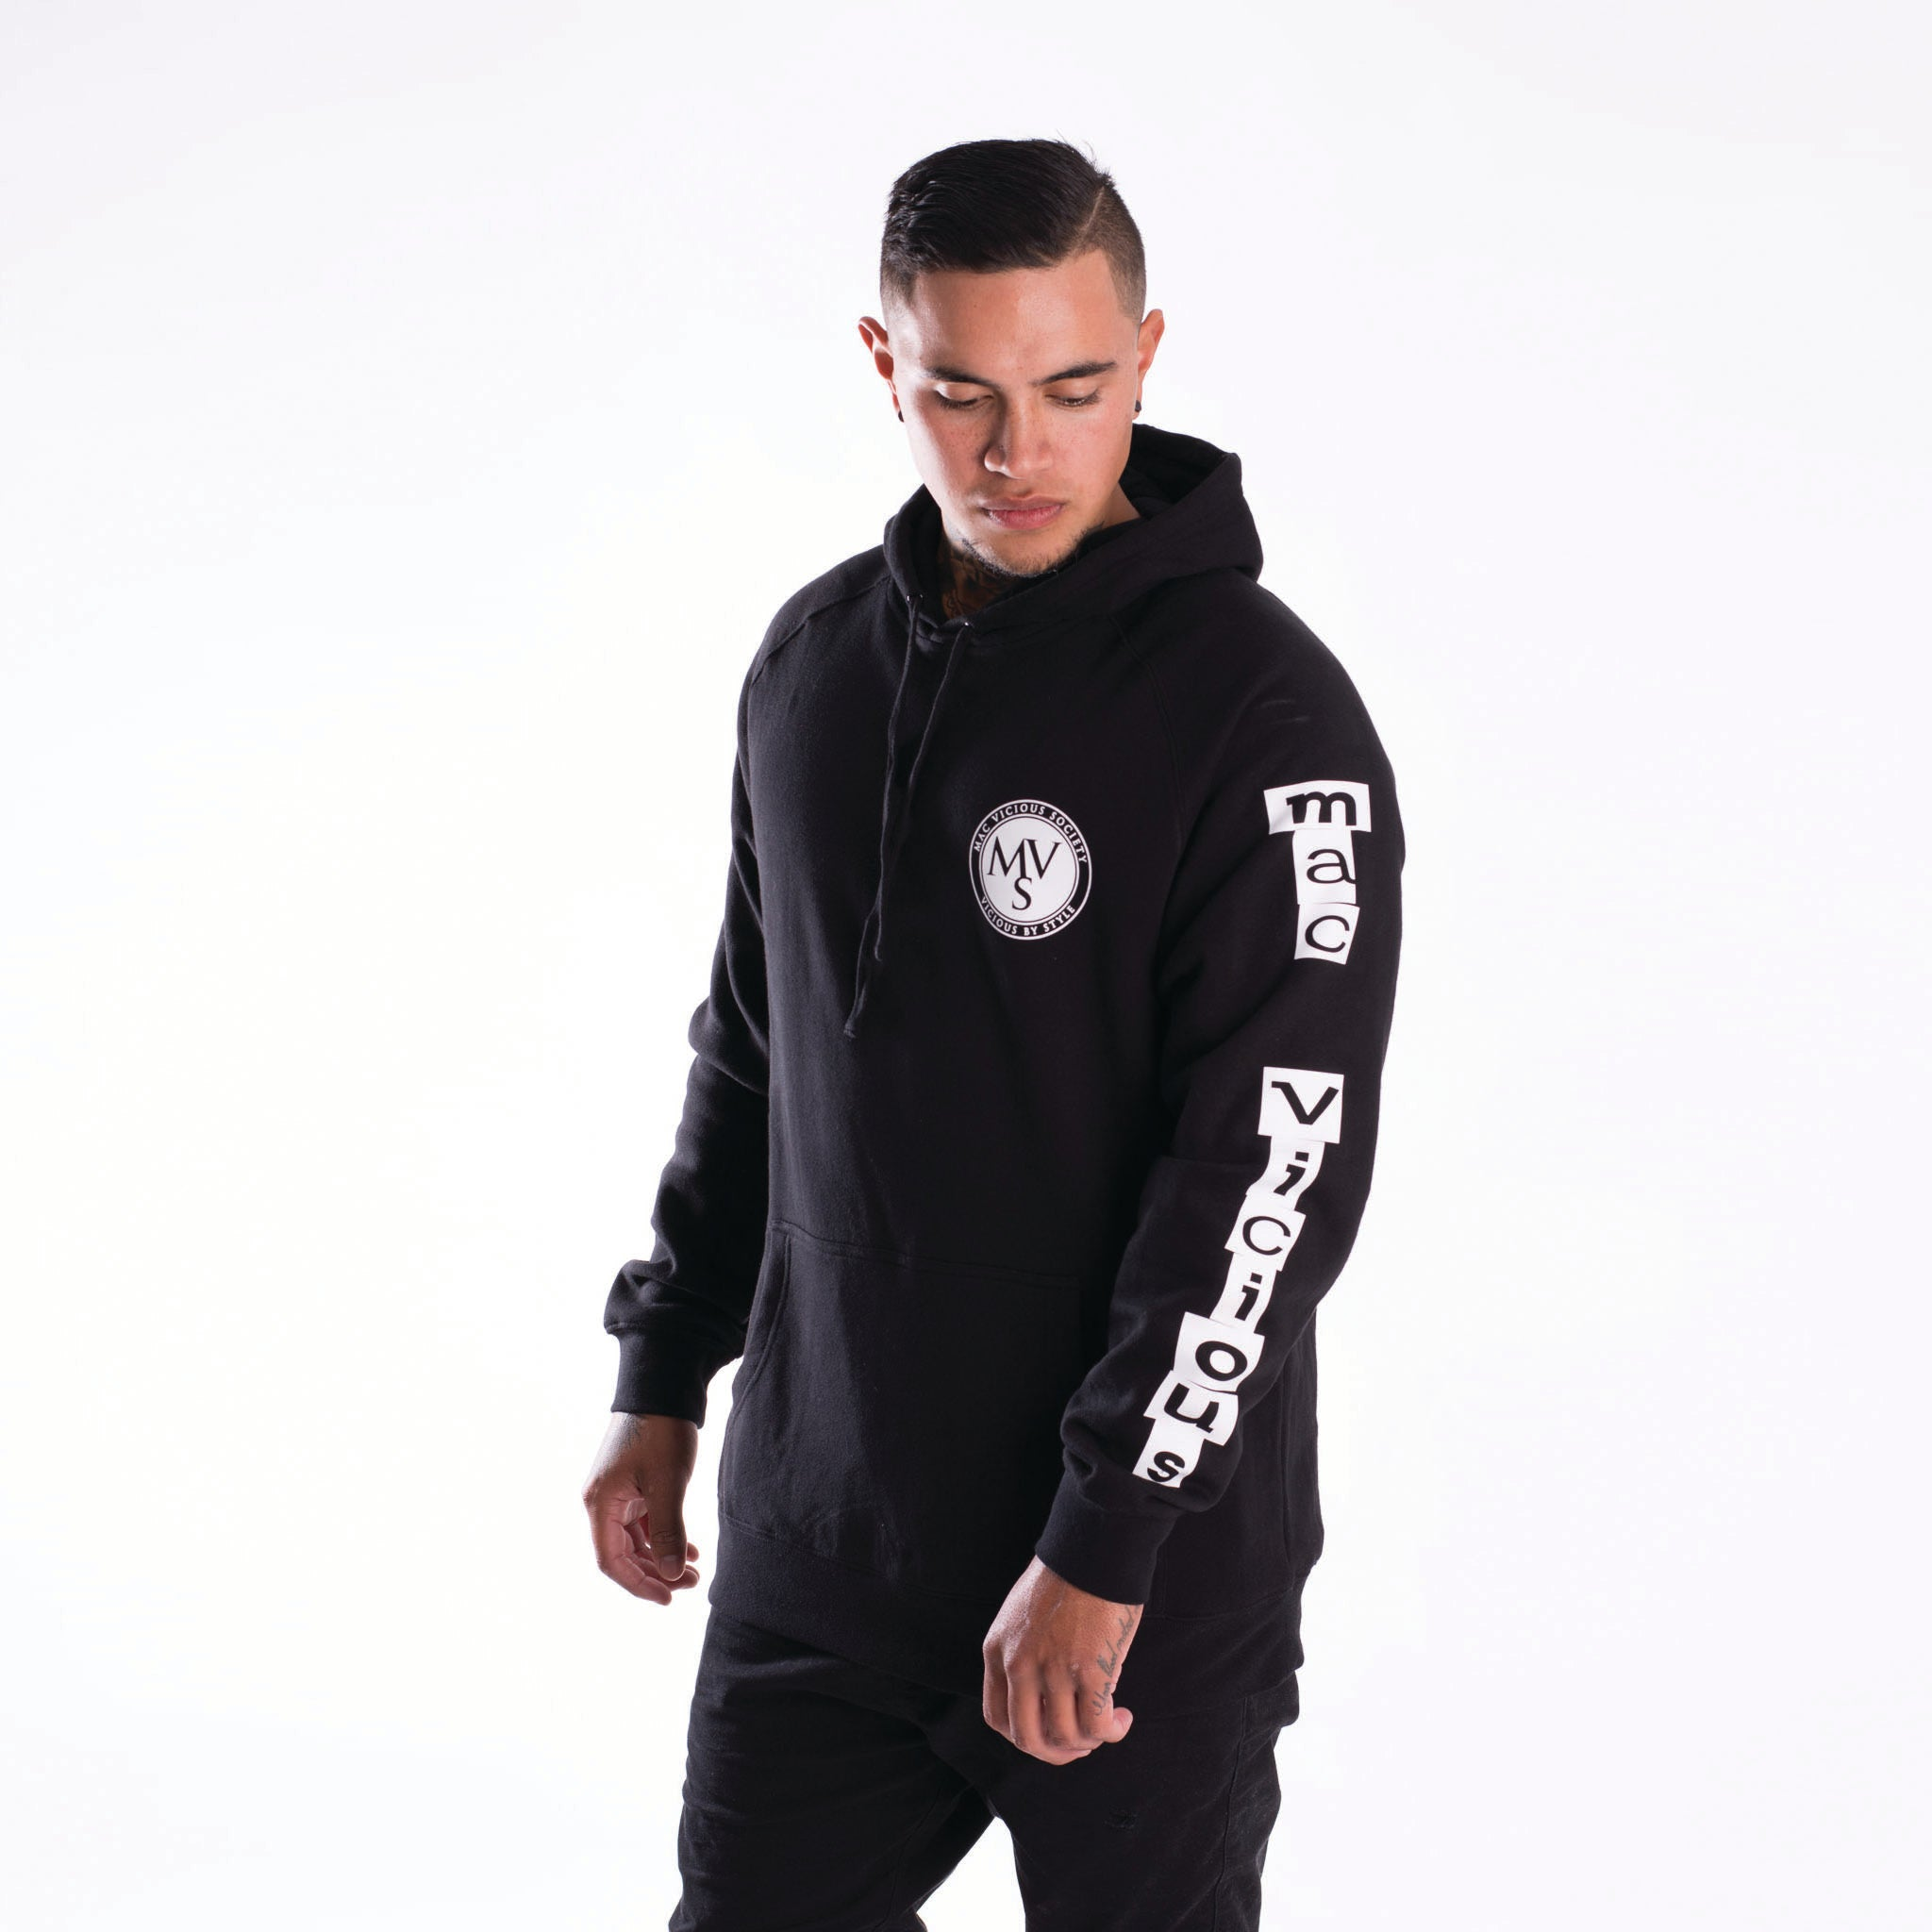 Punk-it long sleeve hoodie